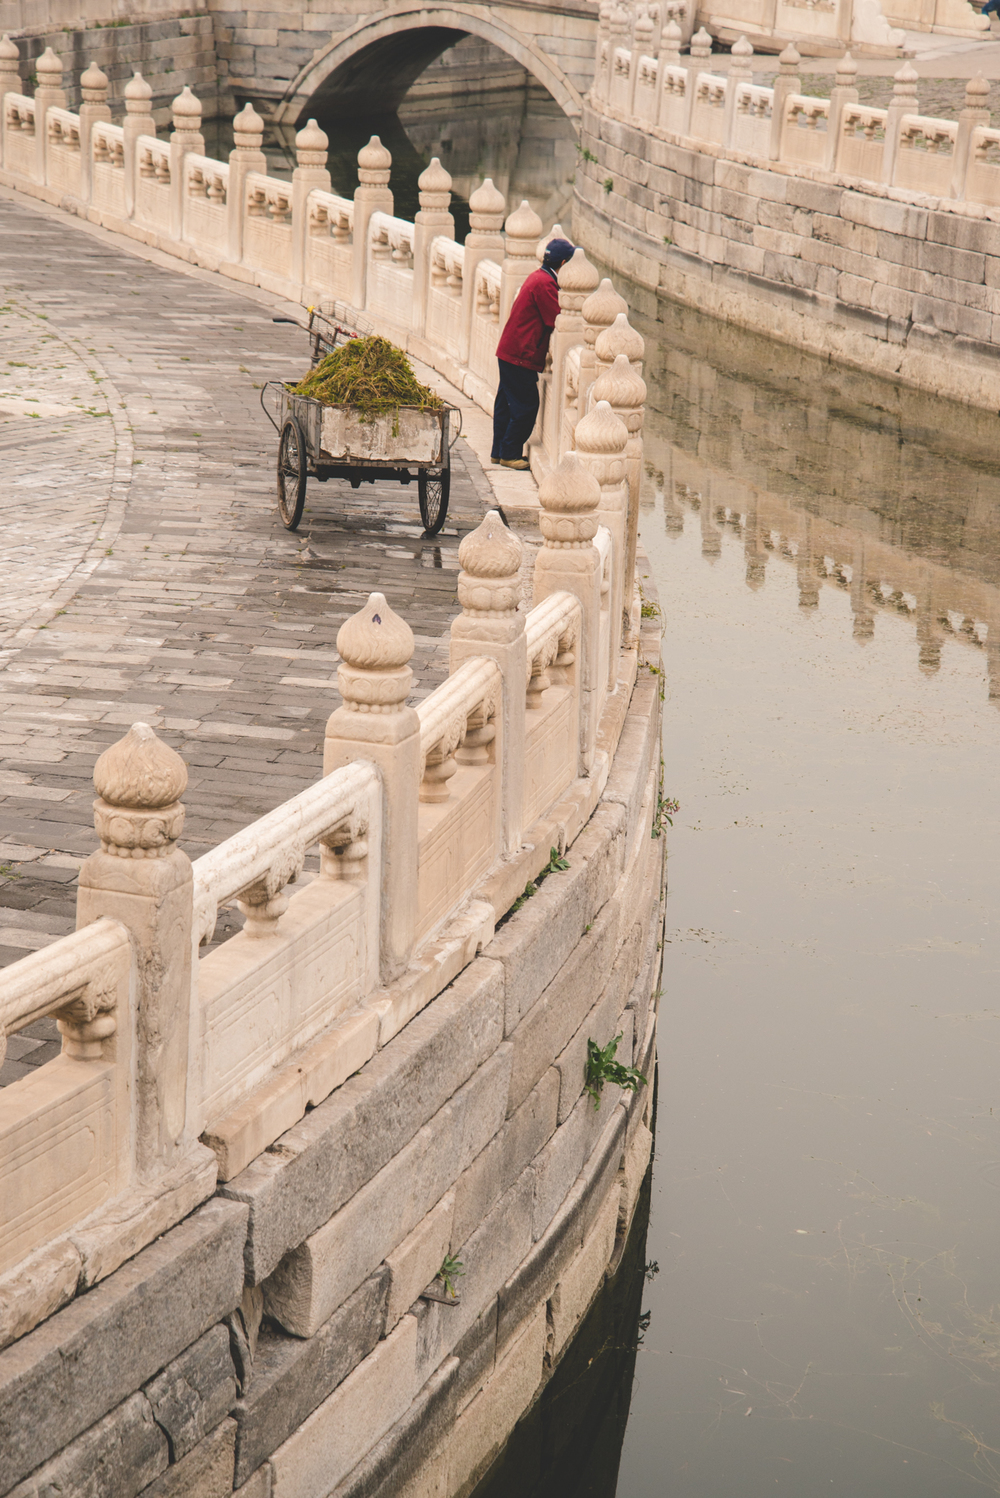 Forbidden City, Beijing  A man is cleaning the waters by scooping up the weeds and leaves with a net onto his cart.